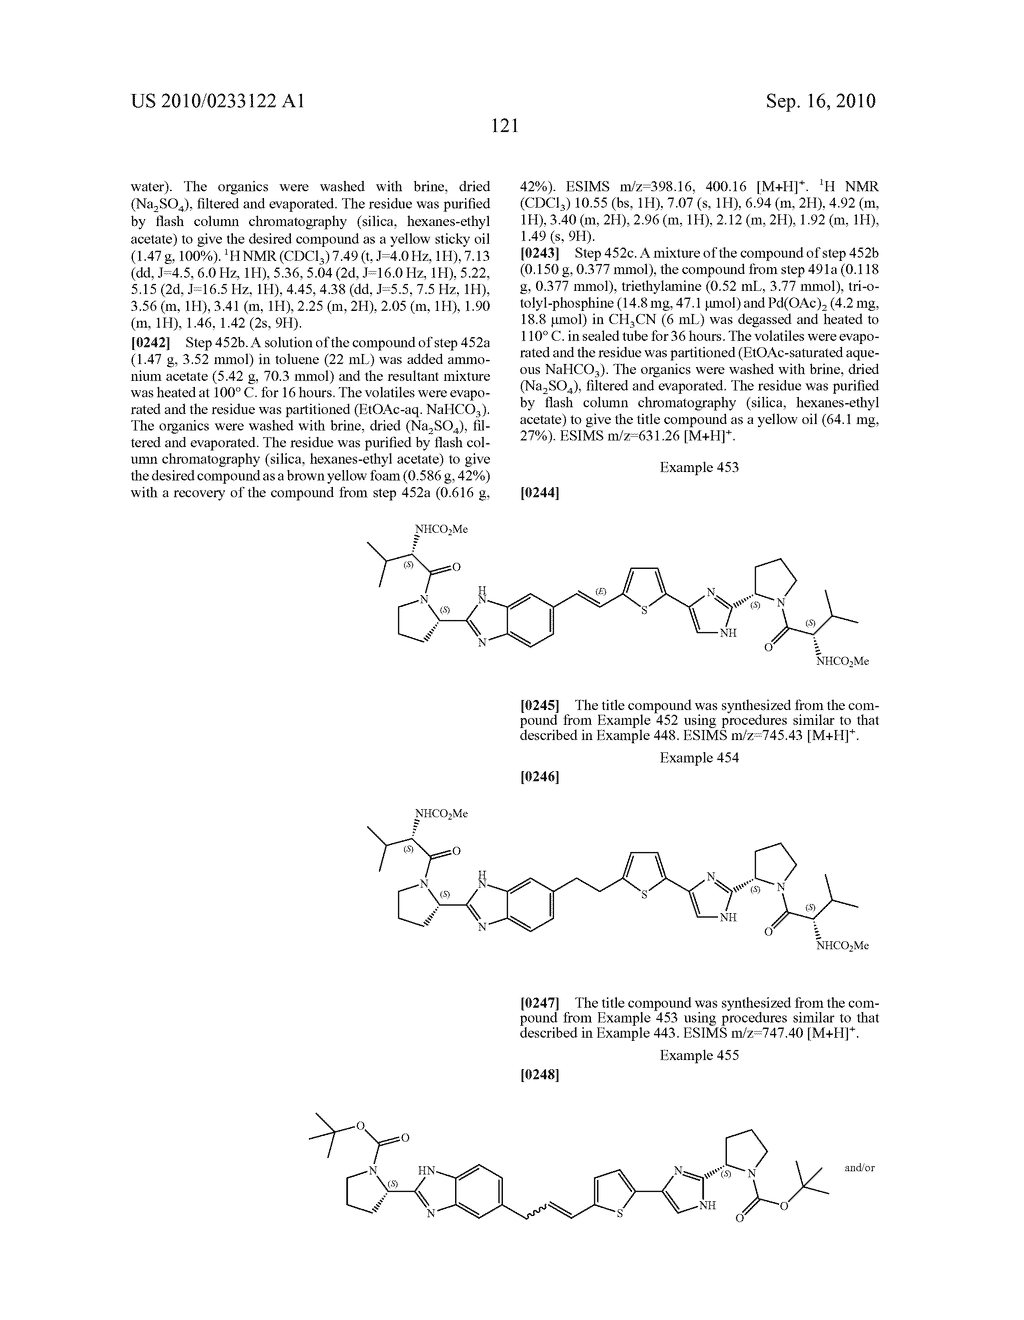 NOVEL BENZIMIDAZOLE DERIVATIVES - diagram, schematic, and image 122